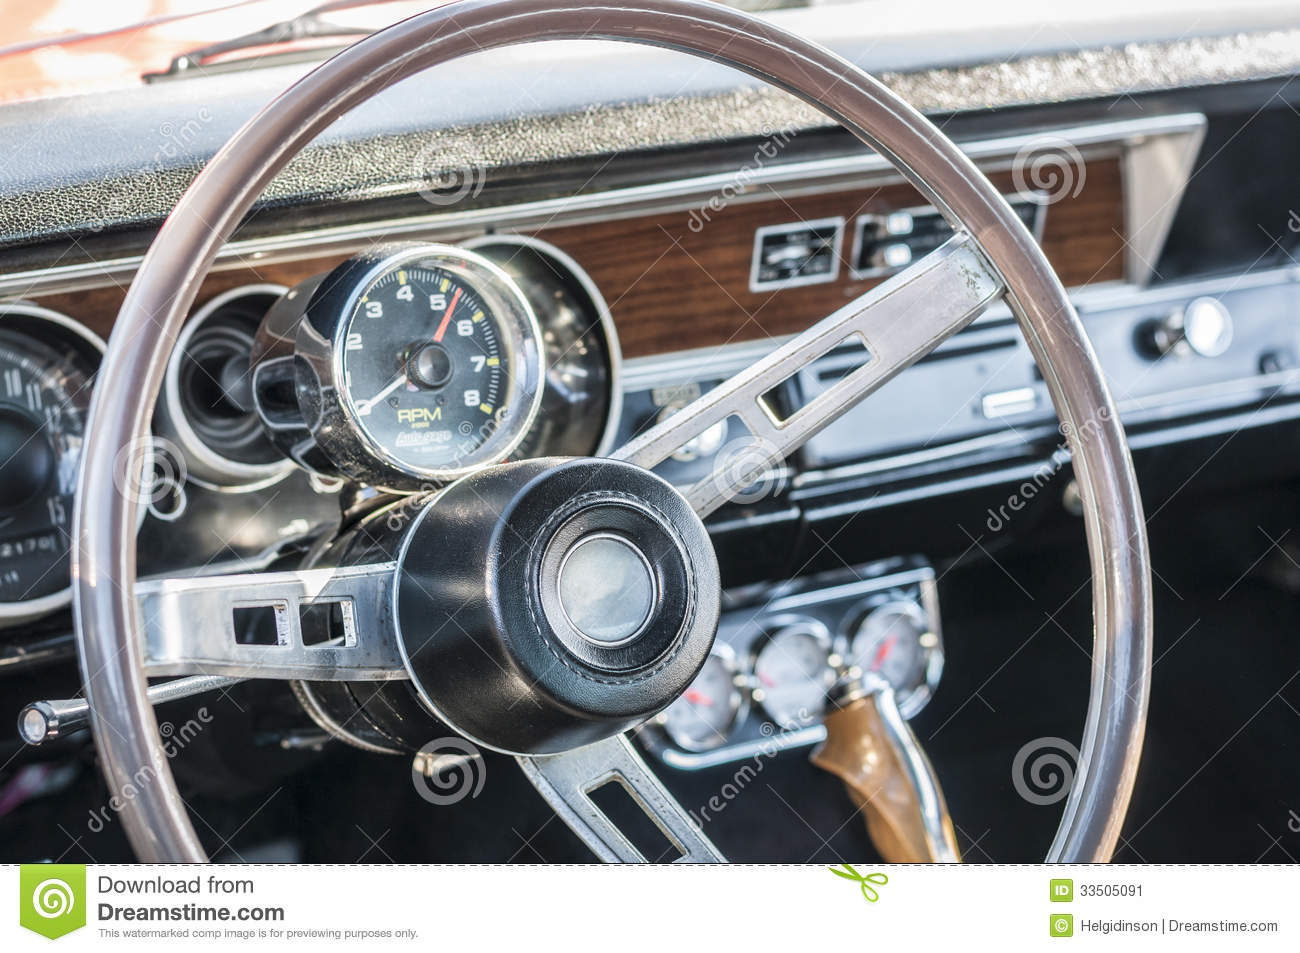 how to hold steering wheel during turn